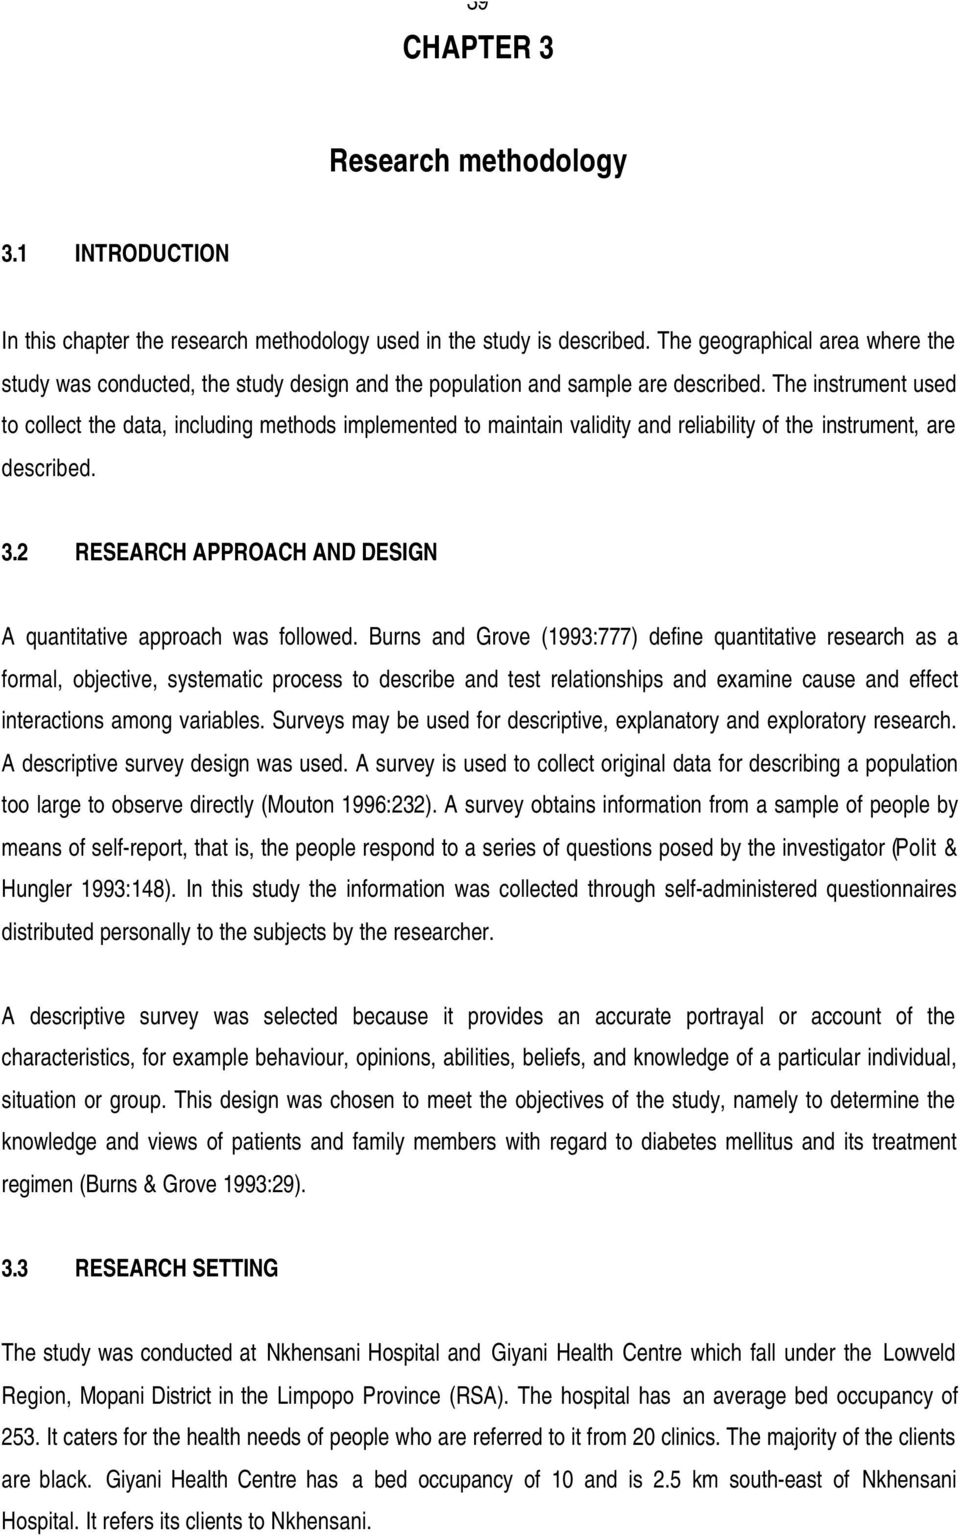 qualitative research methodology sample thesis